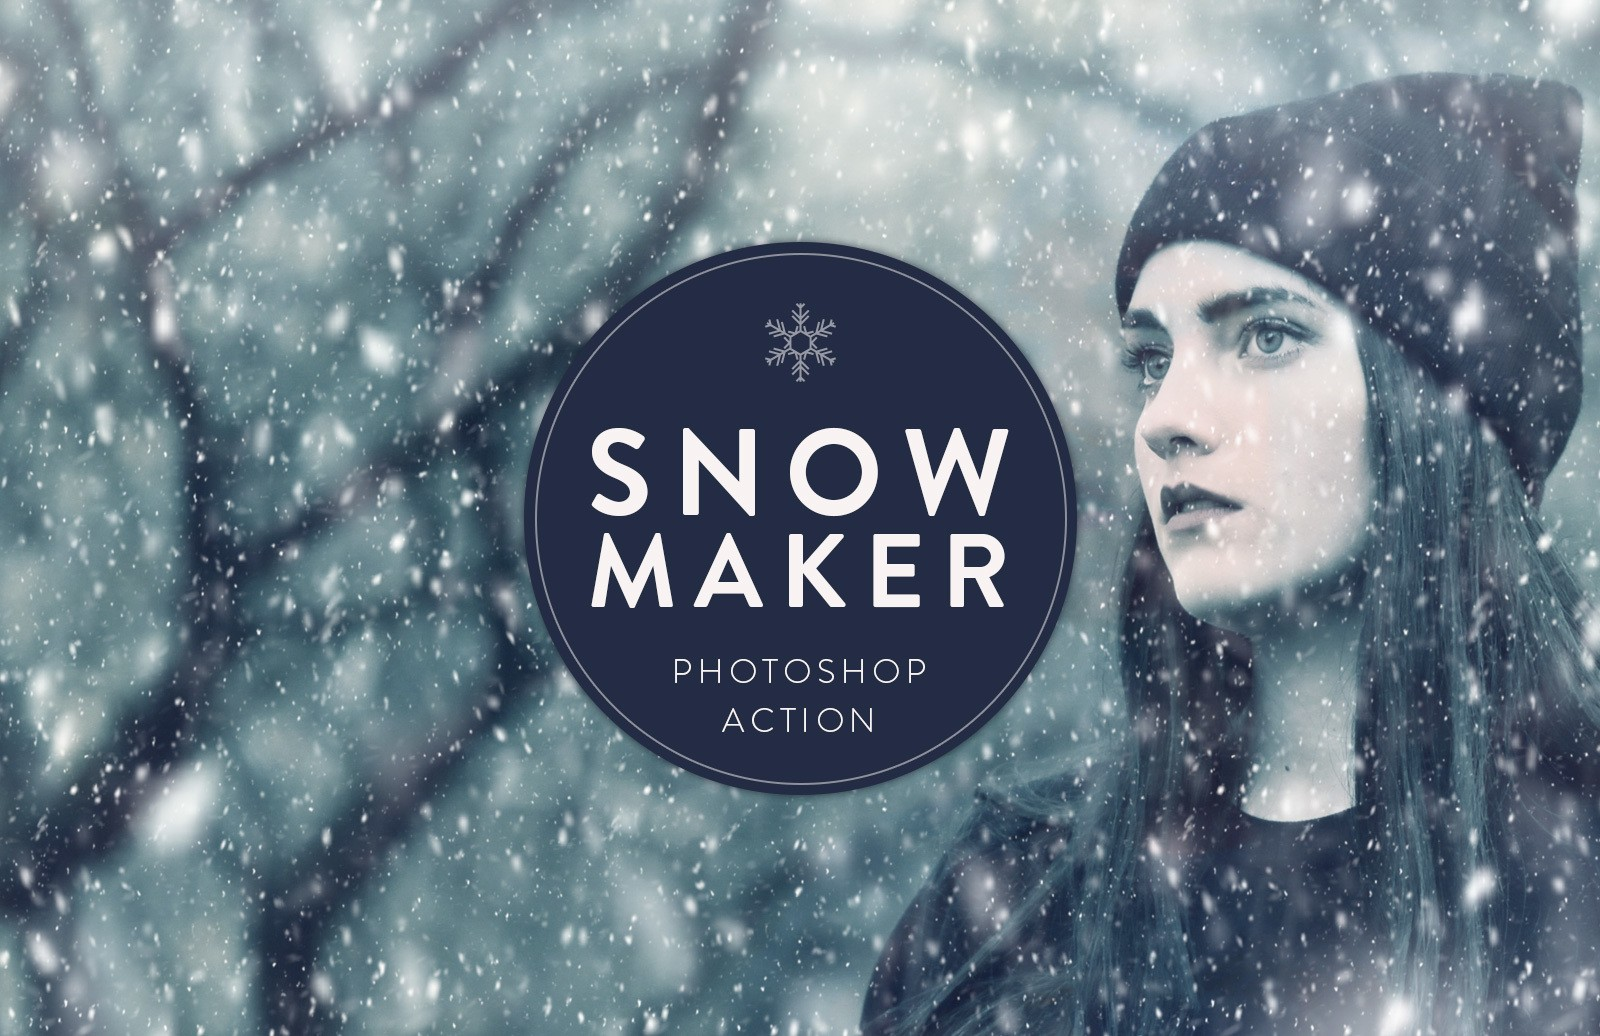 Snow Maker Photoshop Action